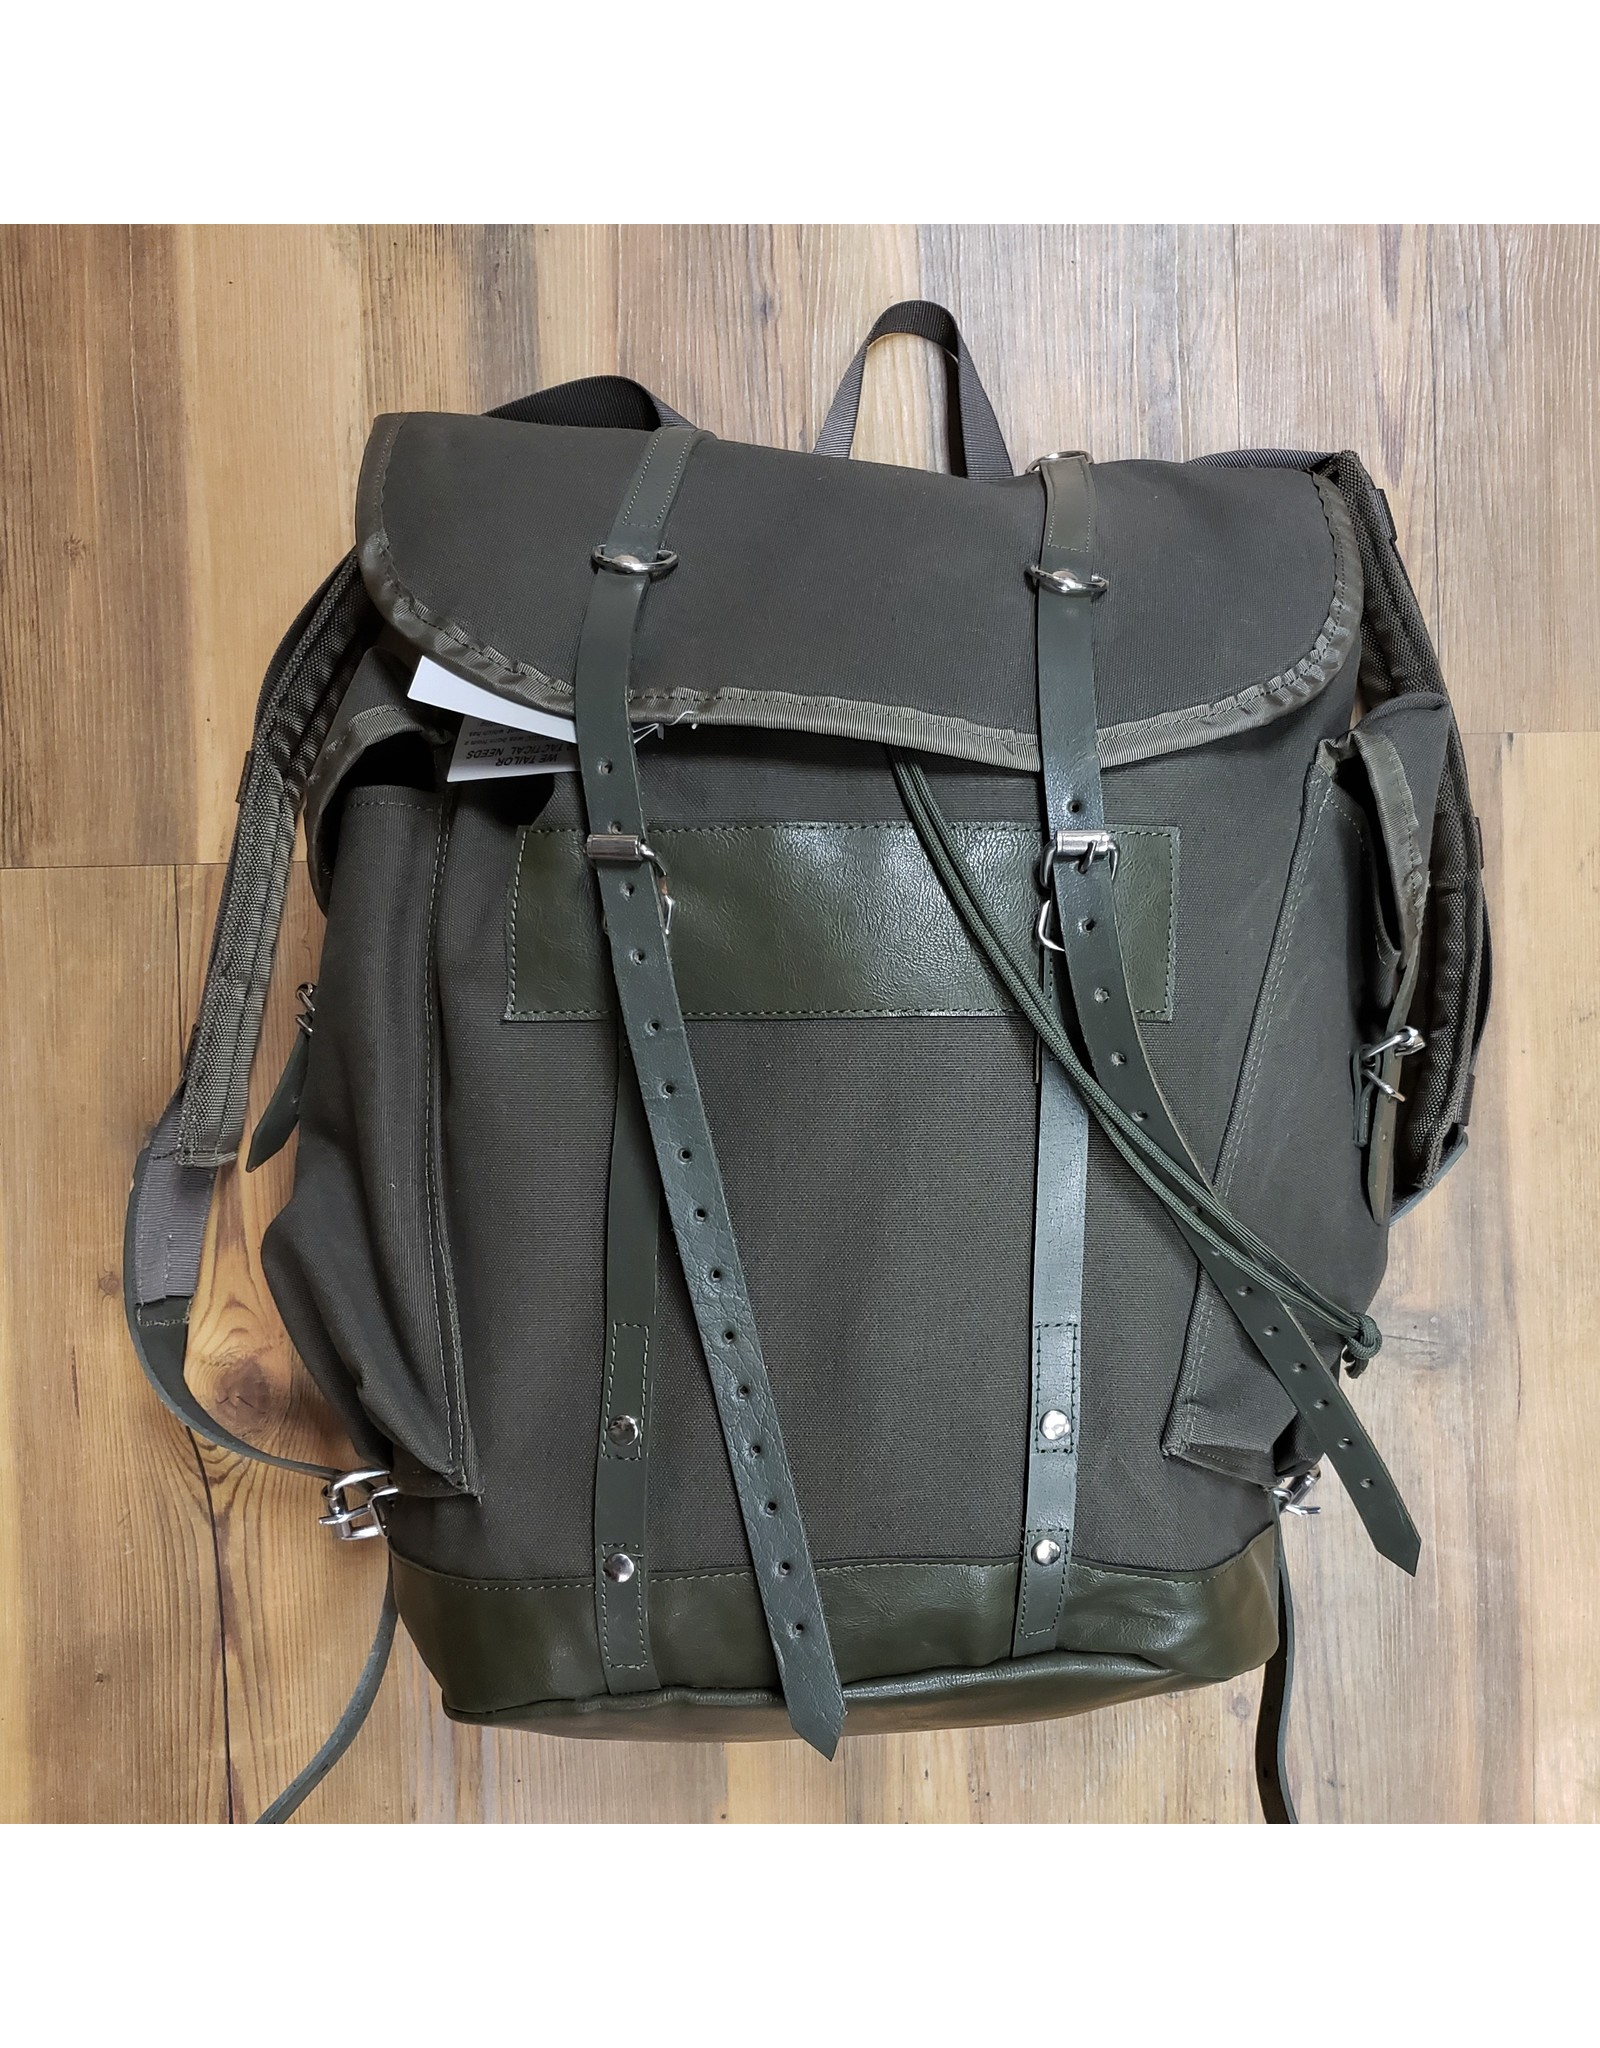 TRG GERMAN CANVAS MOUNTAIN PACK -NEW